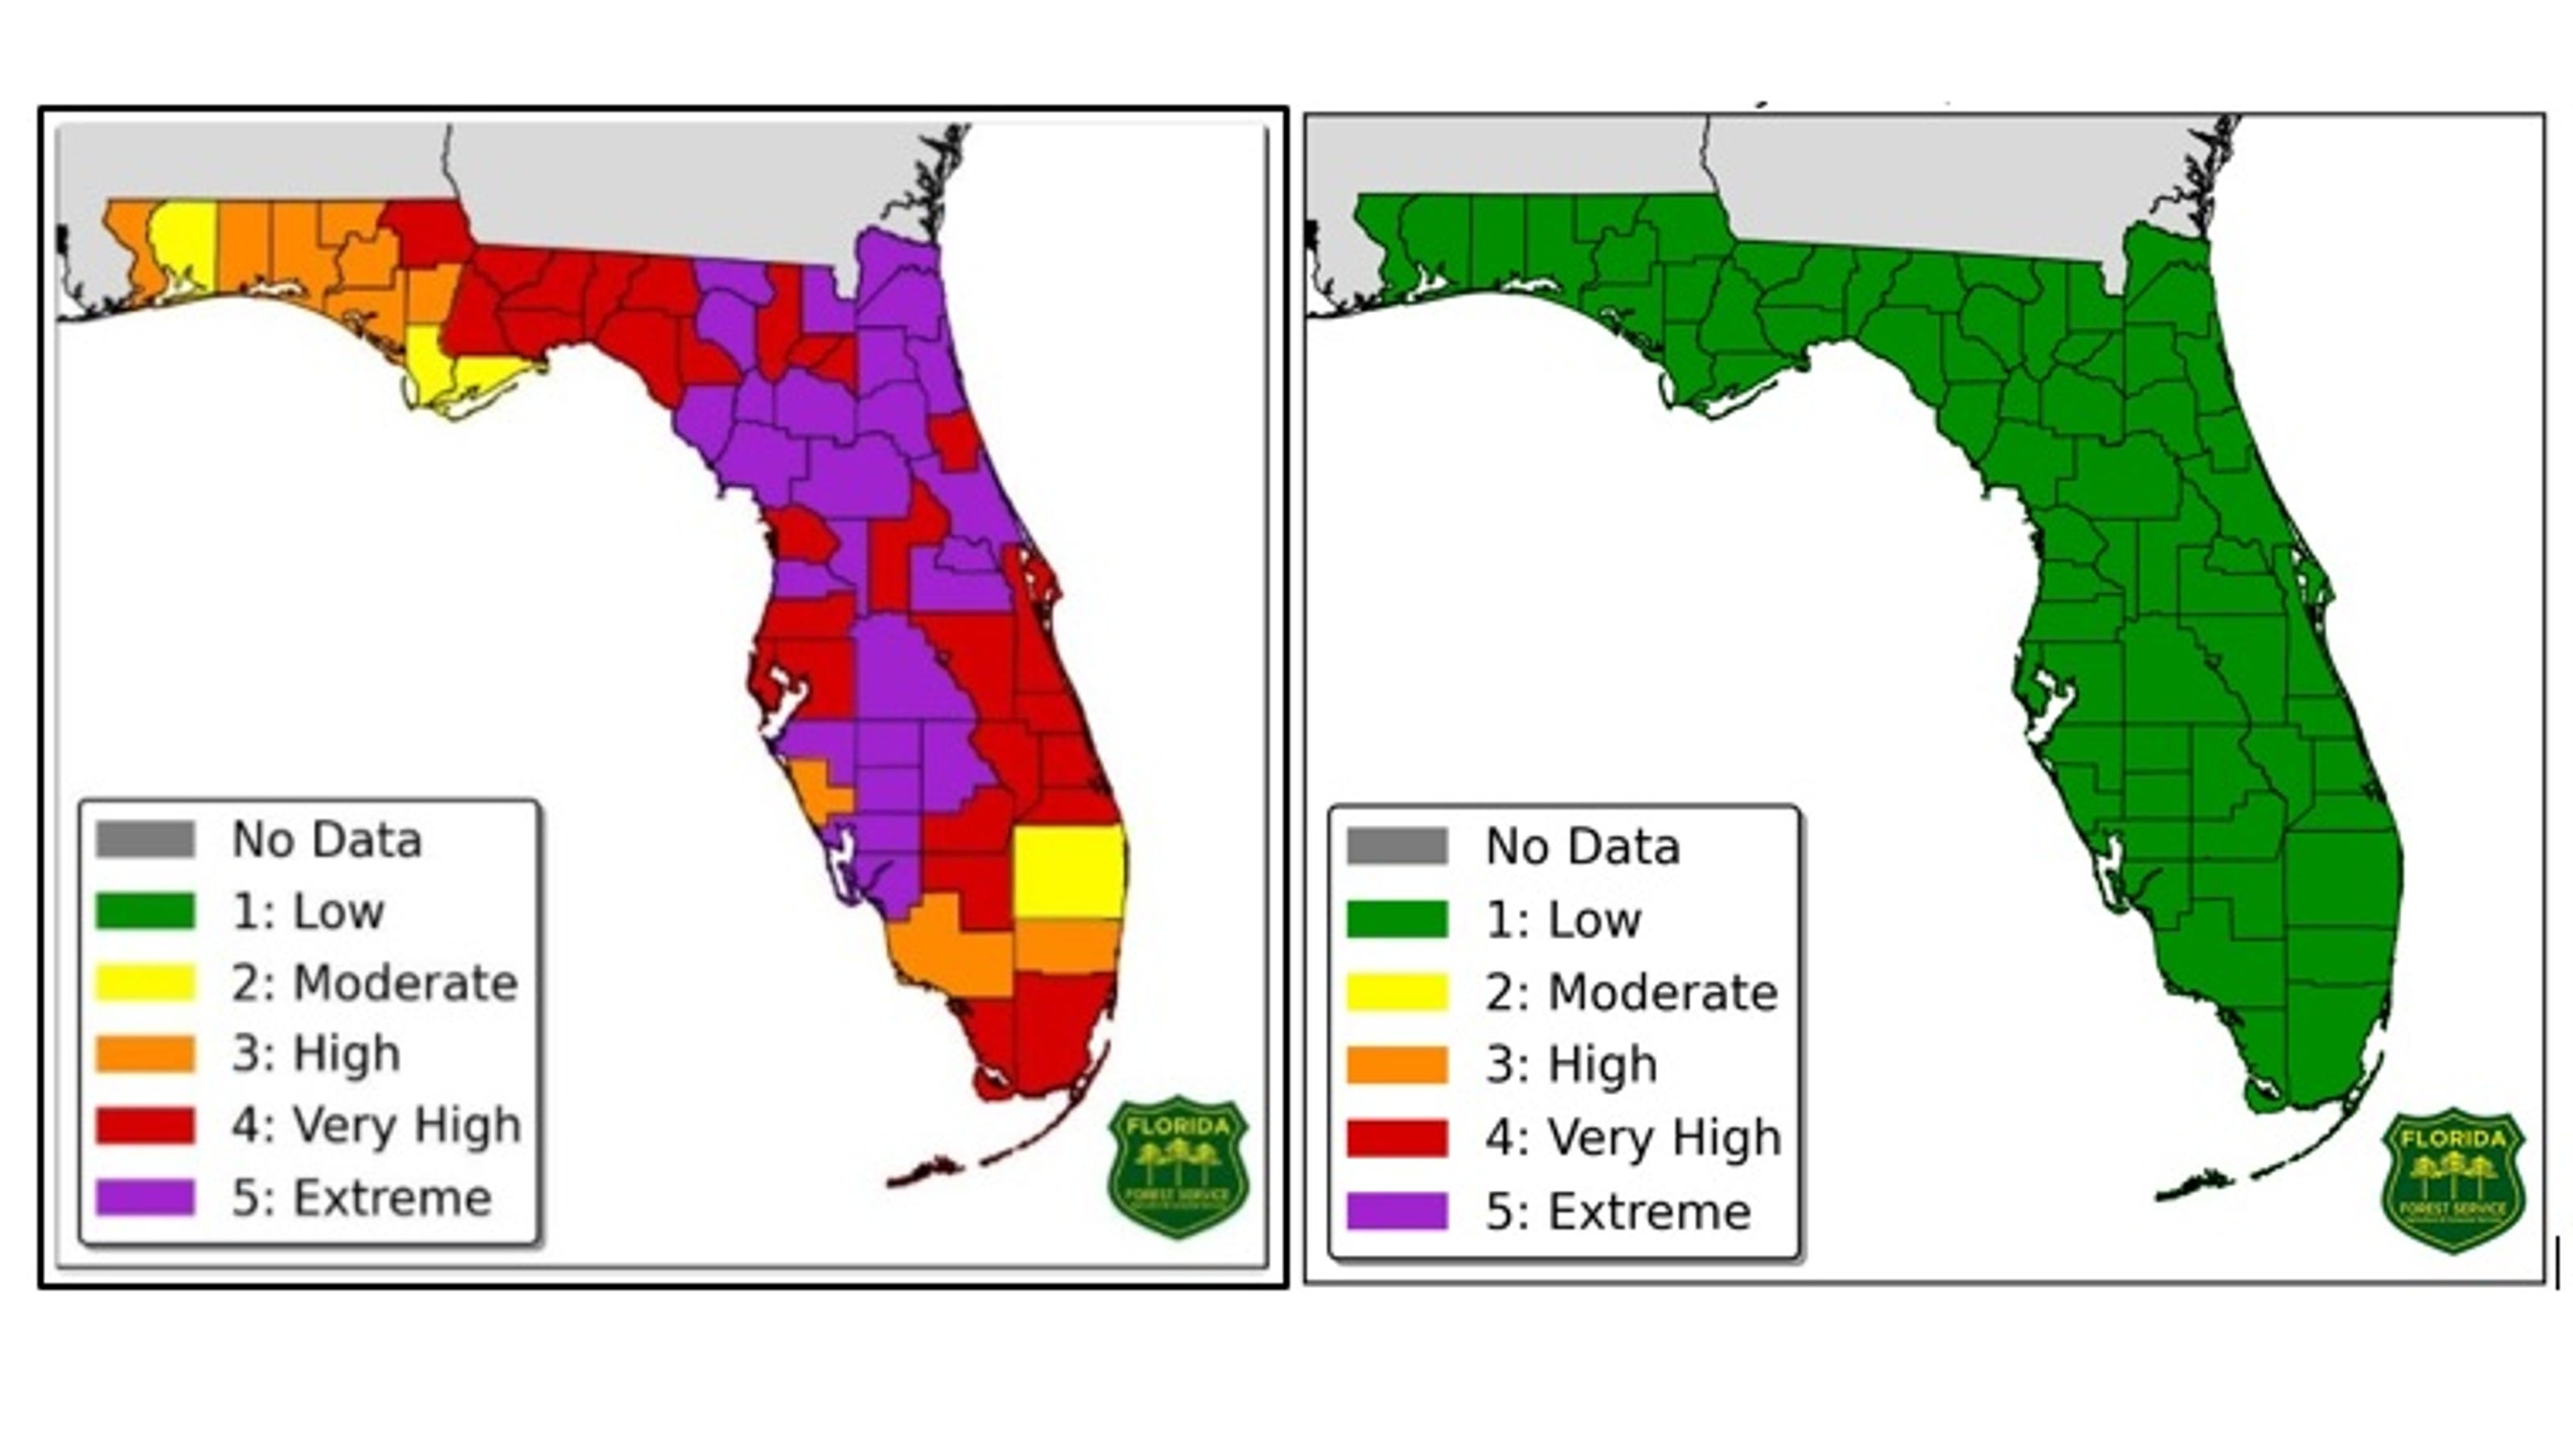 Florida Fire Map 2017.Florida S Fire Danger Map It S All Green Now Thanks To Heavy Rainfall